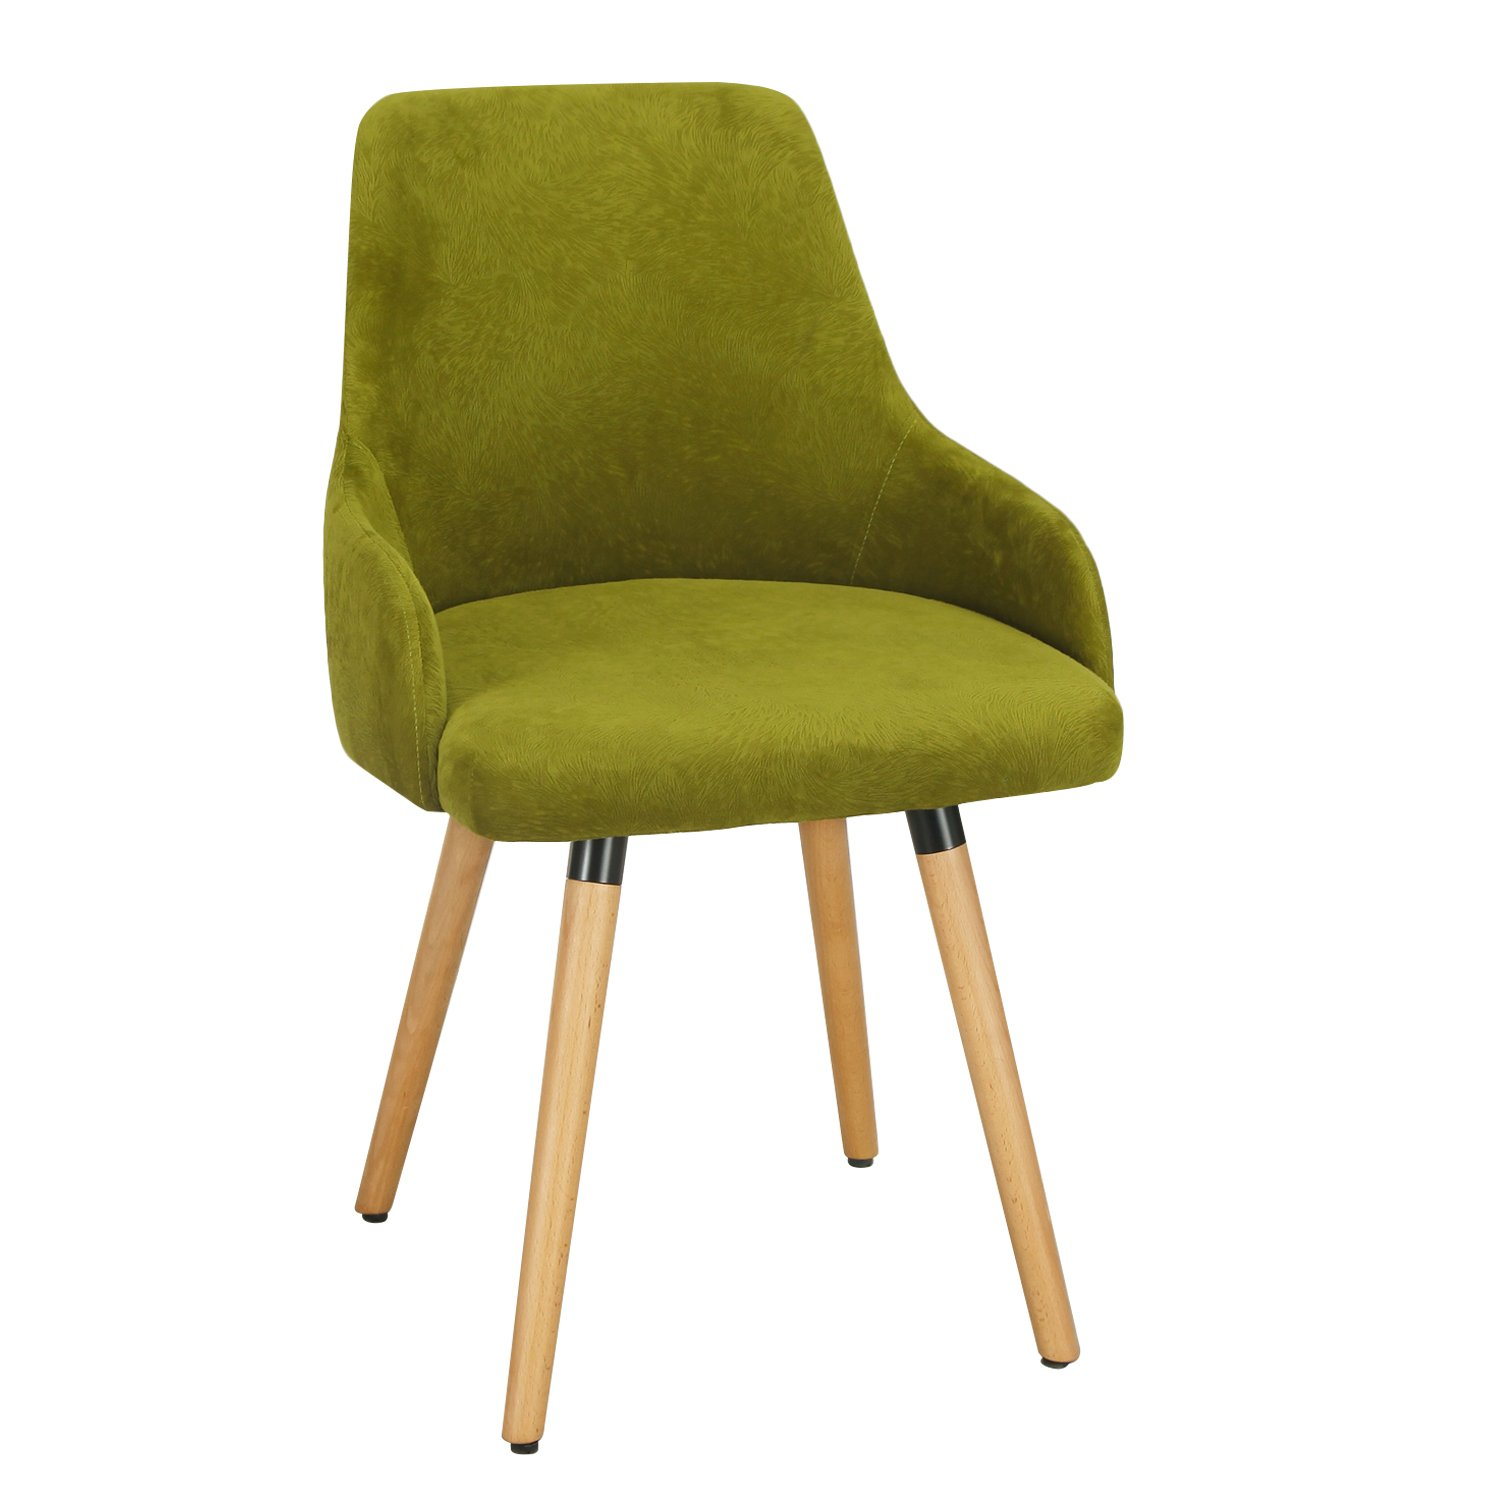 ELEGAN Fabric Accent Leisure Chair with Wood Leg